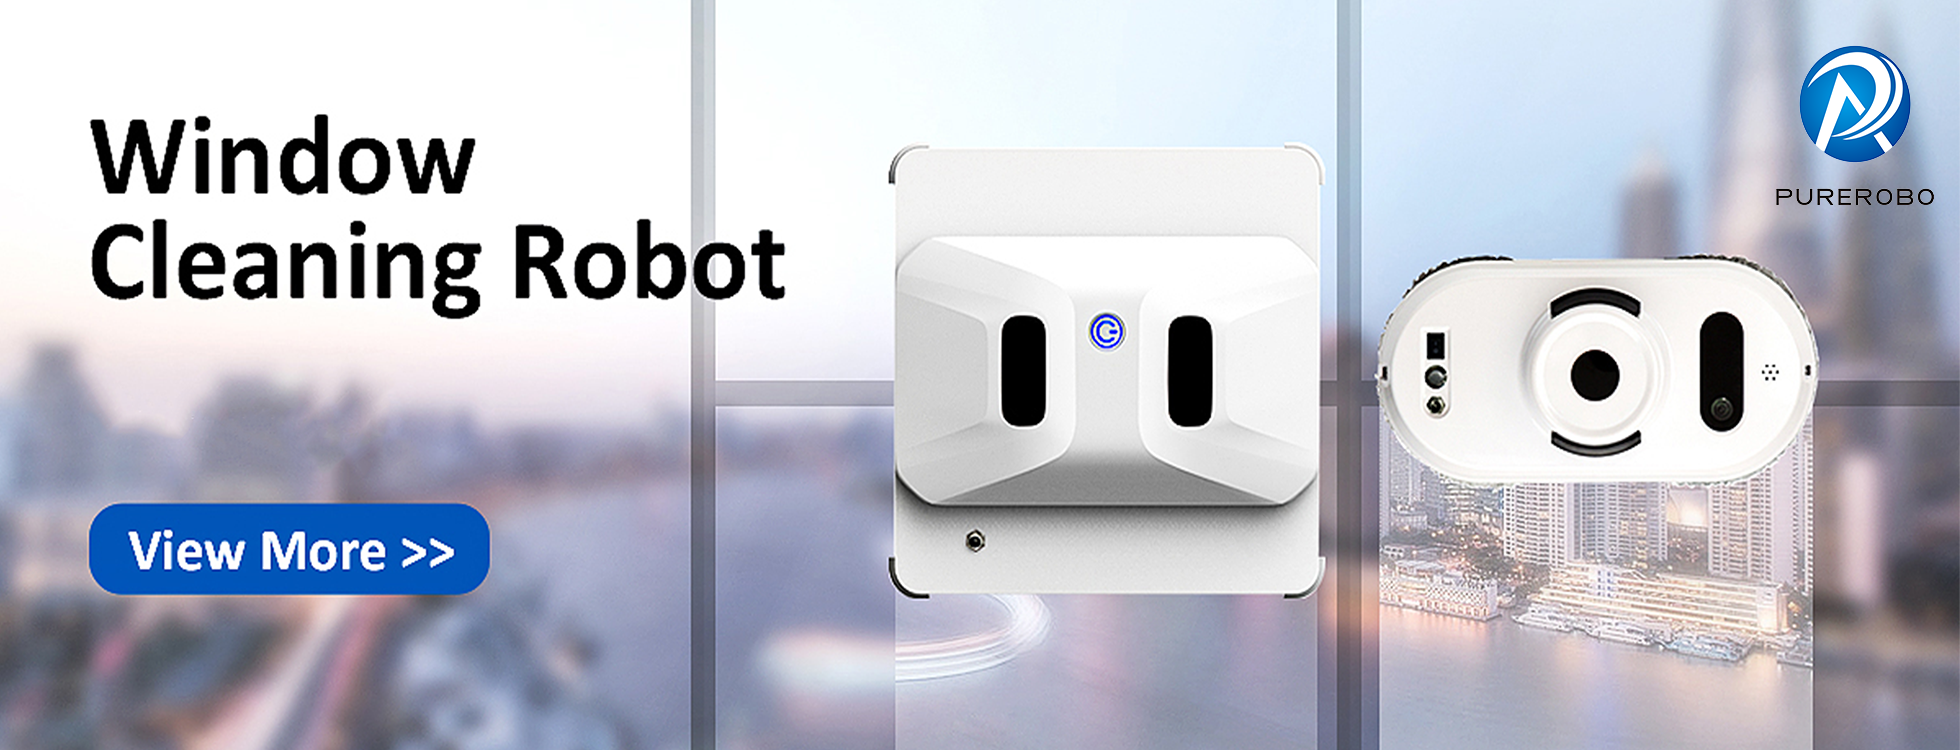 Window Cleaning Robot